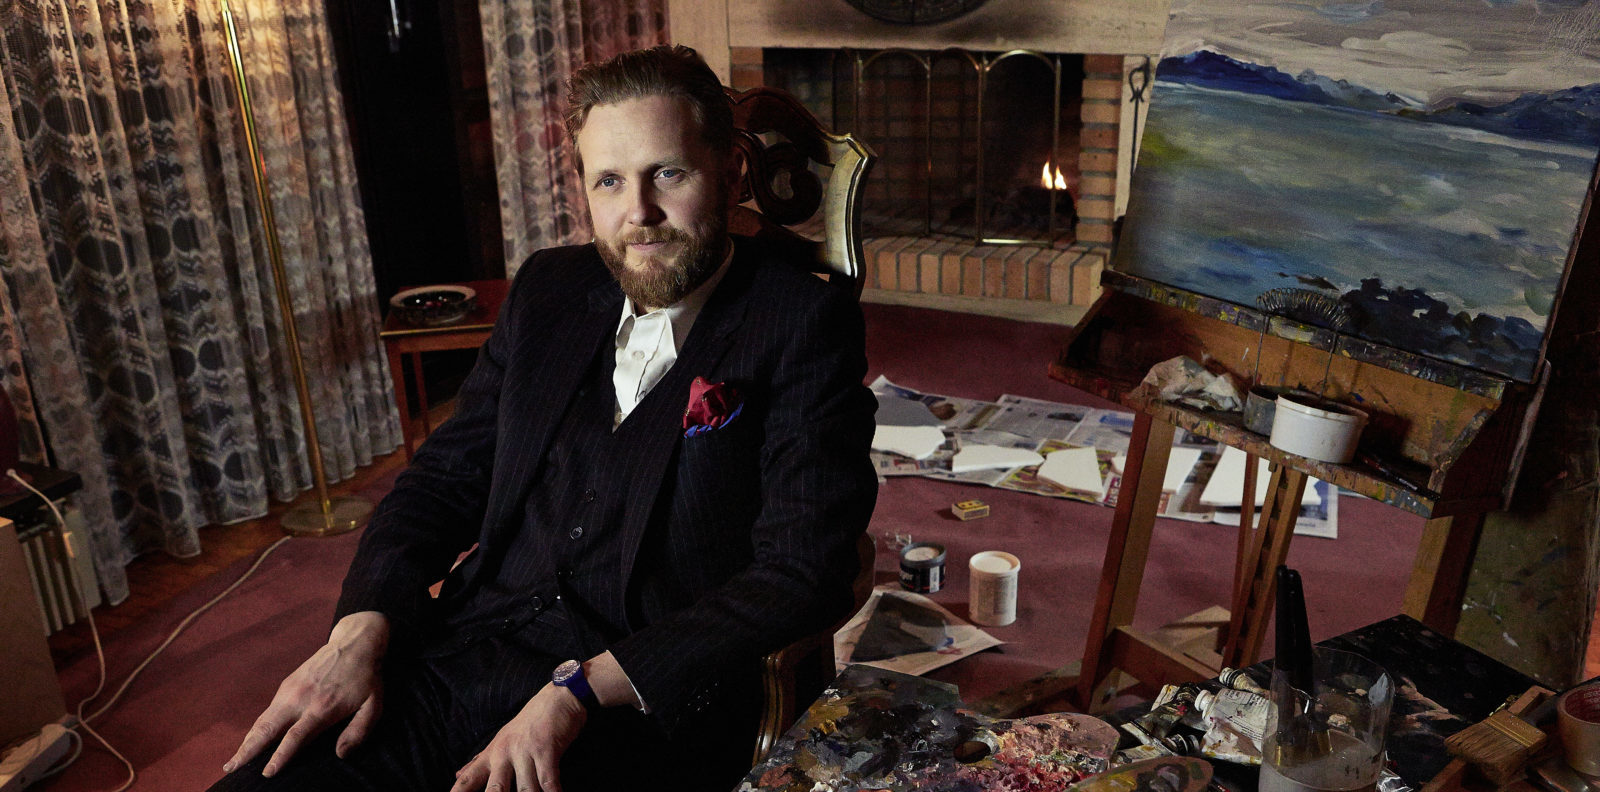 """Icelandic artist Ragnar Kjartansson was named the winner of this year's Ars Fennica Prize. Presented by the Henna and Pertti Niemistö Art Foundation, which was established in 1990 to promote visual art and help Finnish artists achieve international recognition, the annual $44,000 prize is Finland's biggest visual arts award. He is the twenty-fourth recipient of the prize.Kjartansson received the prize for his presentation of The Boat, one of nine videos from the """"Scenes from Western Culture"""" series (2015)—which conveys an absurd and sometimes ominous vision of Western life. The 2.5 hour video,"""